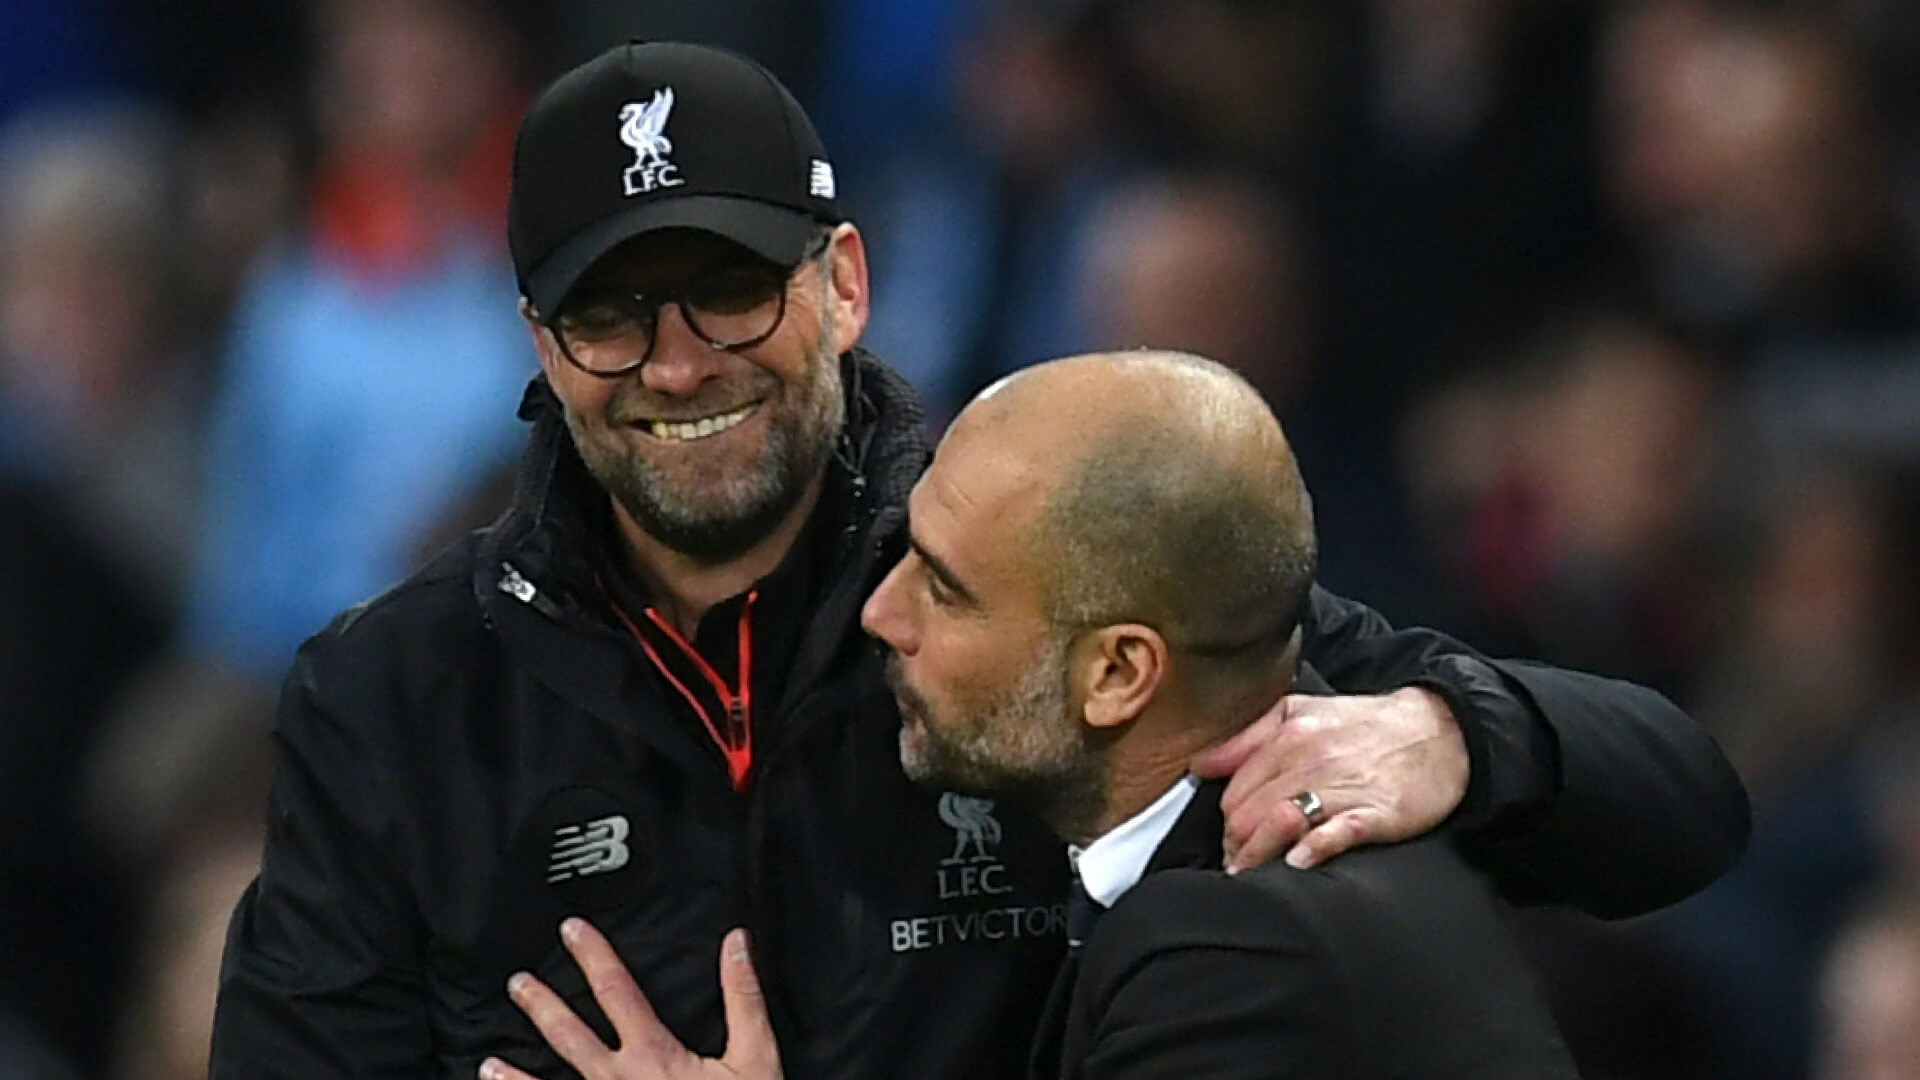 Guardiola-on-Klopp_He-and-his-teams-have-helped-me-become-a-better-manager_24hfootnewscom_